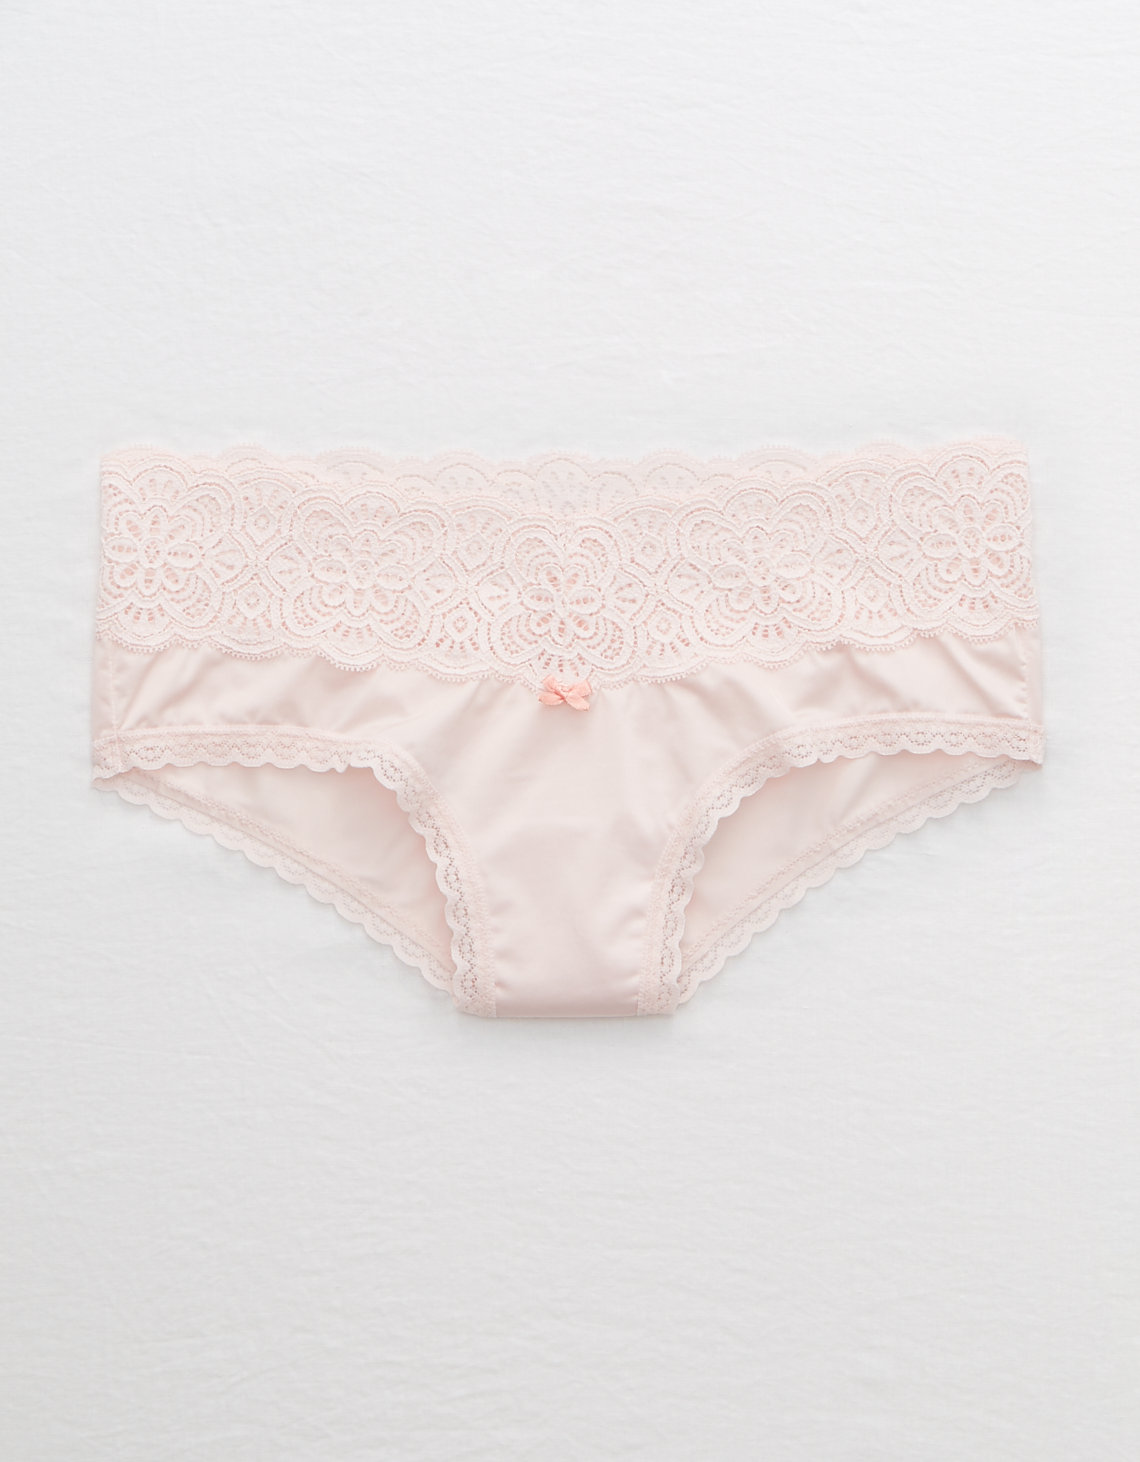 Aerie Lace Trim Shine Cheeky Undie